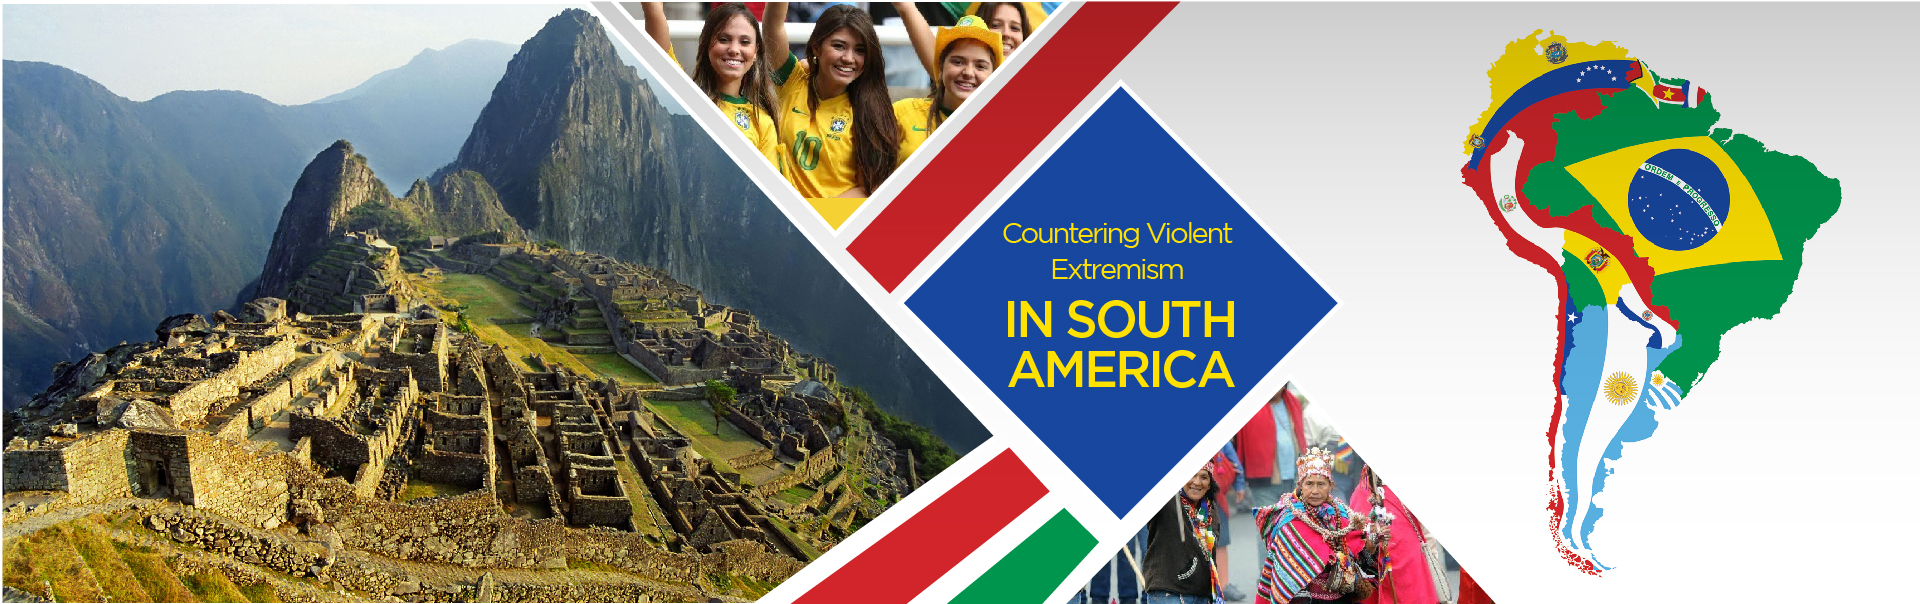 CVE INITIATIVES IN SOUTH AMERICA